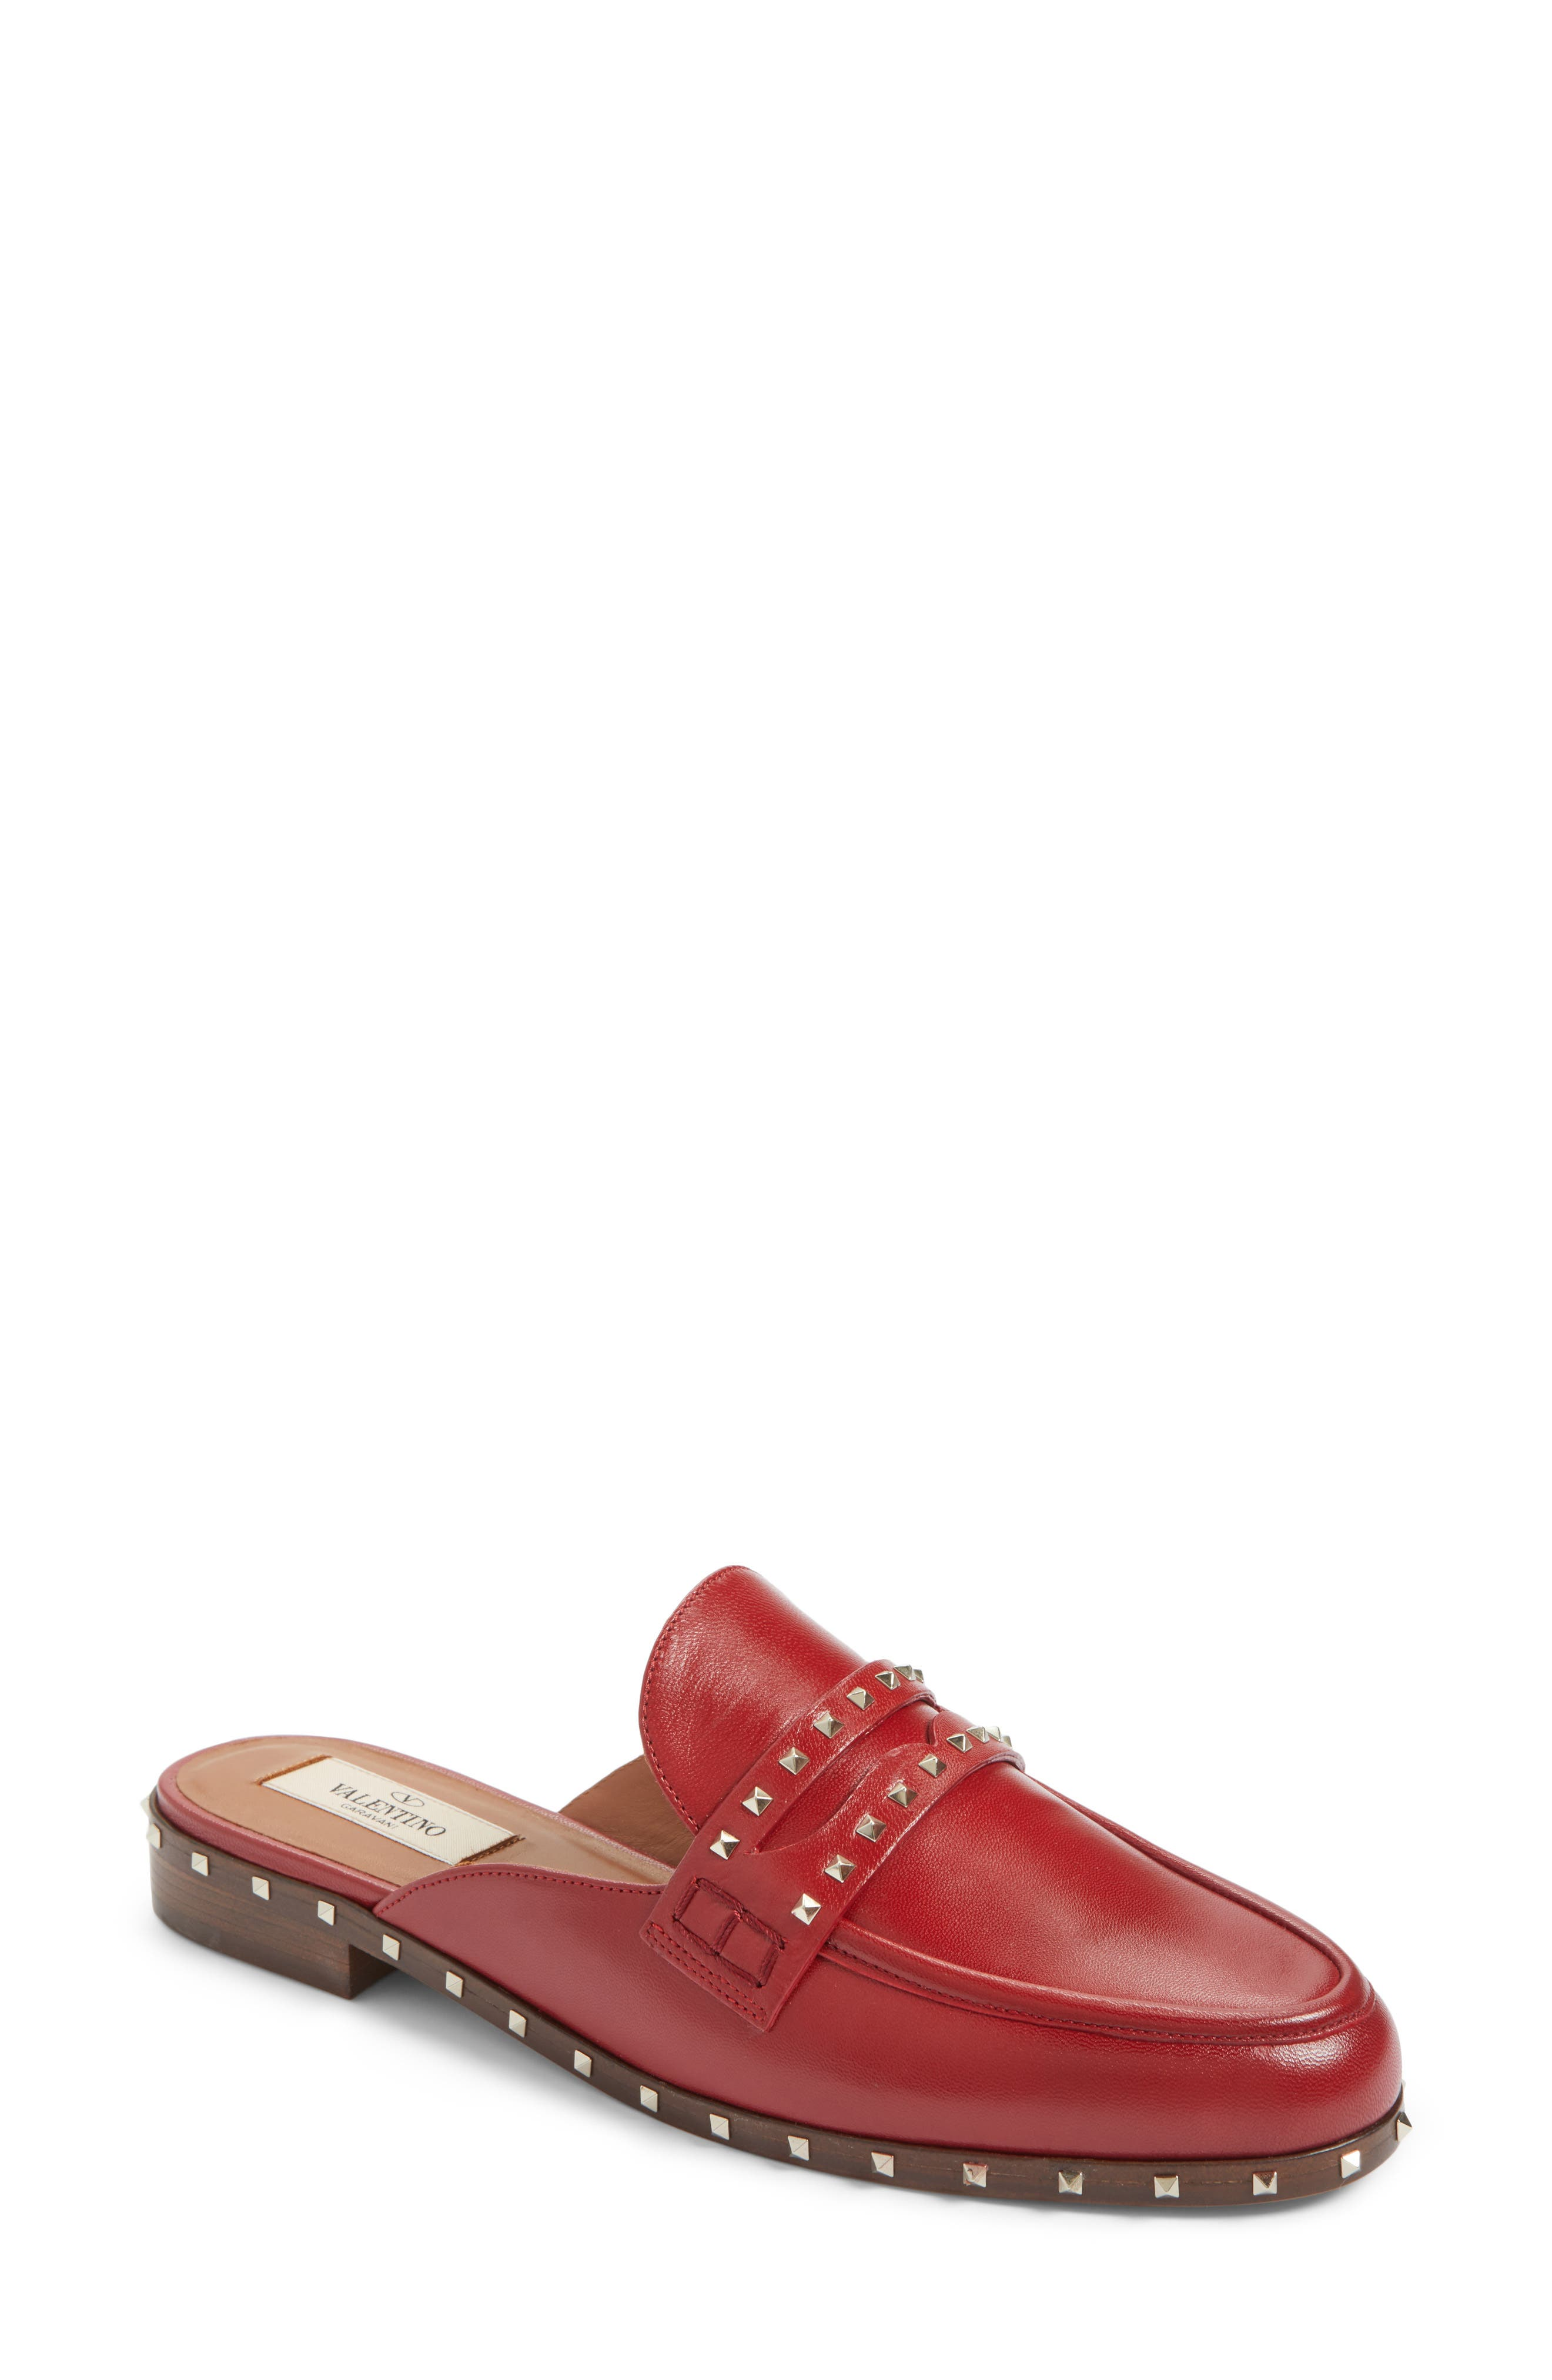 Soul Rockstud Loafer Mule,                             Main thumbnail 1, color,                             Red Leather